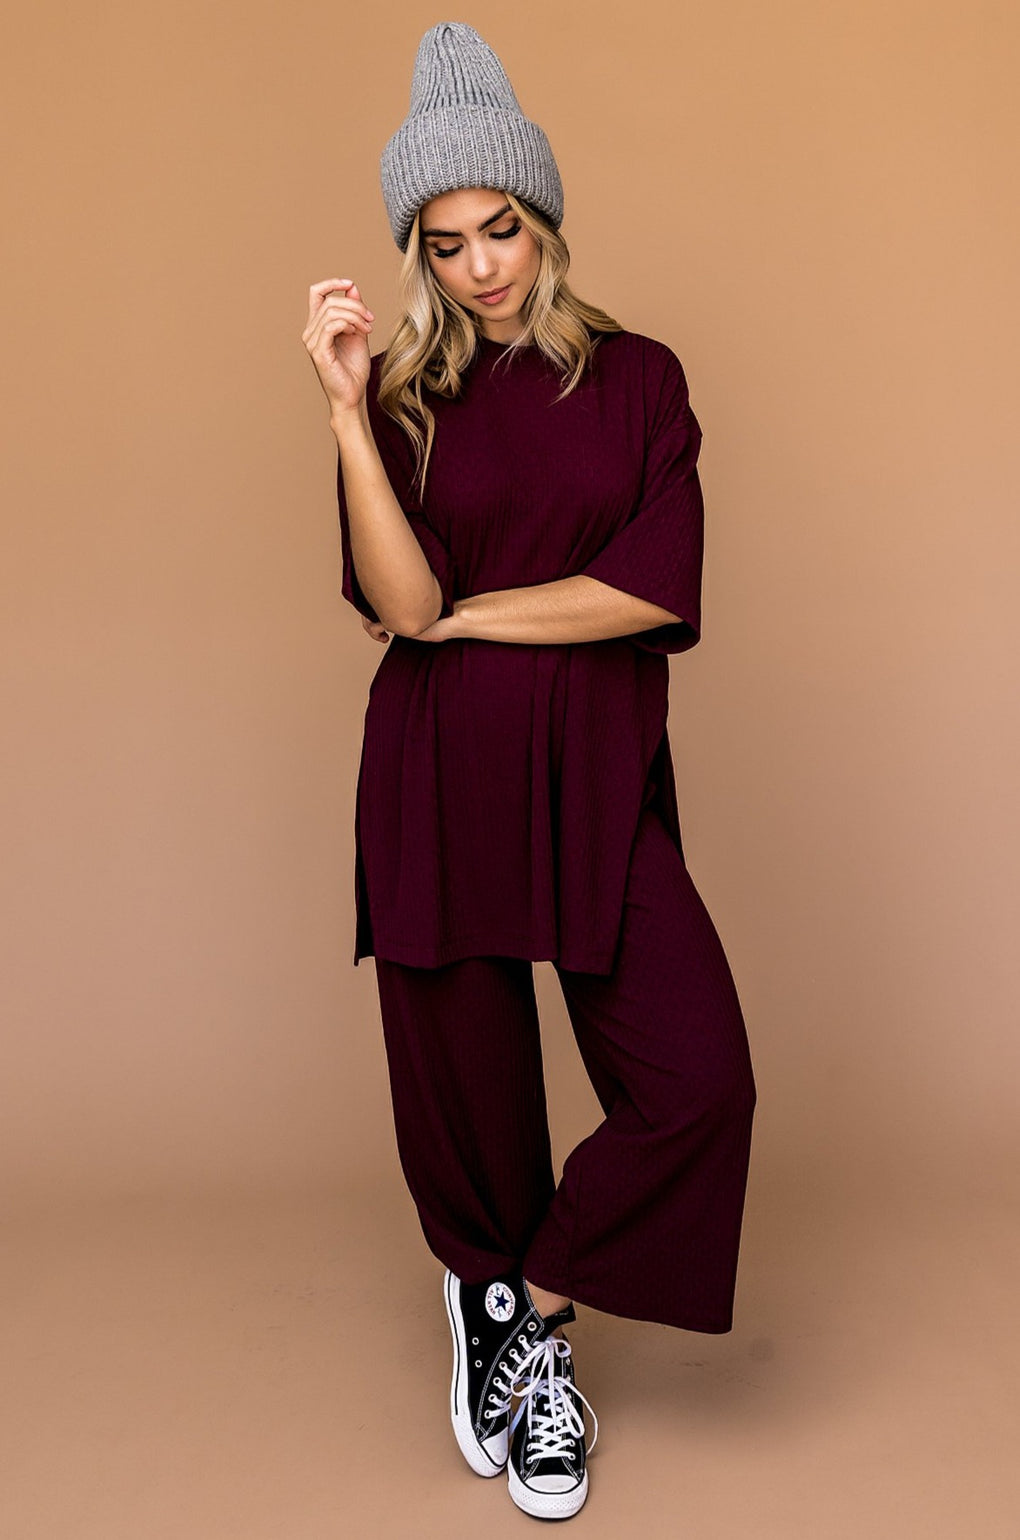 LALA ORIGINAL DESIGN: Lex Ribbed Playsuit in Wine